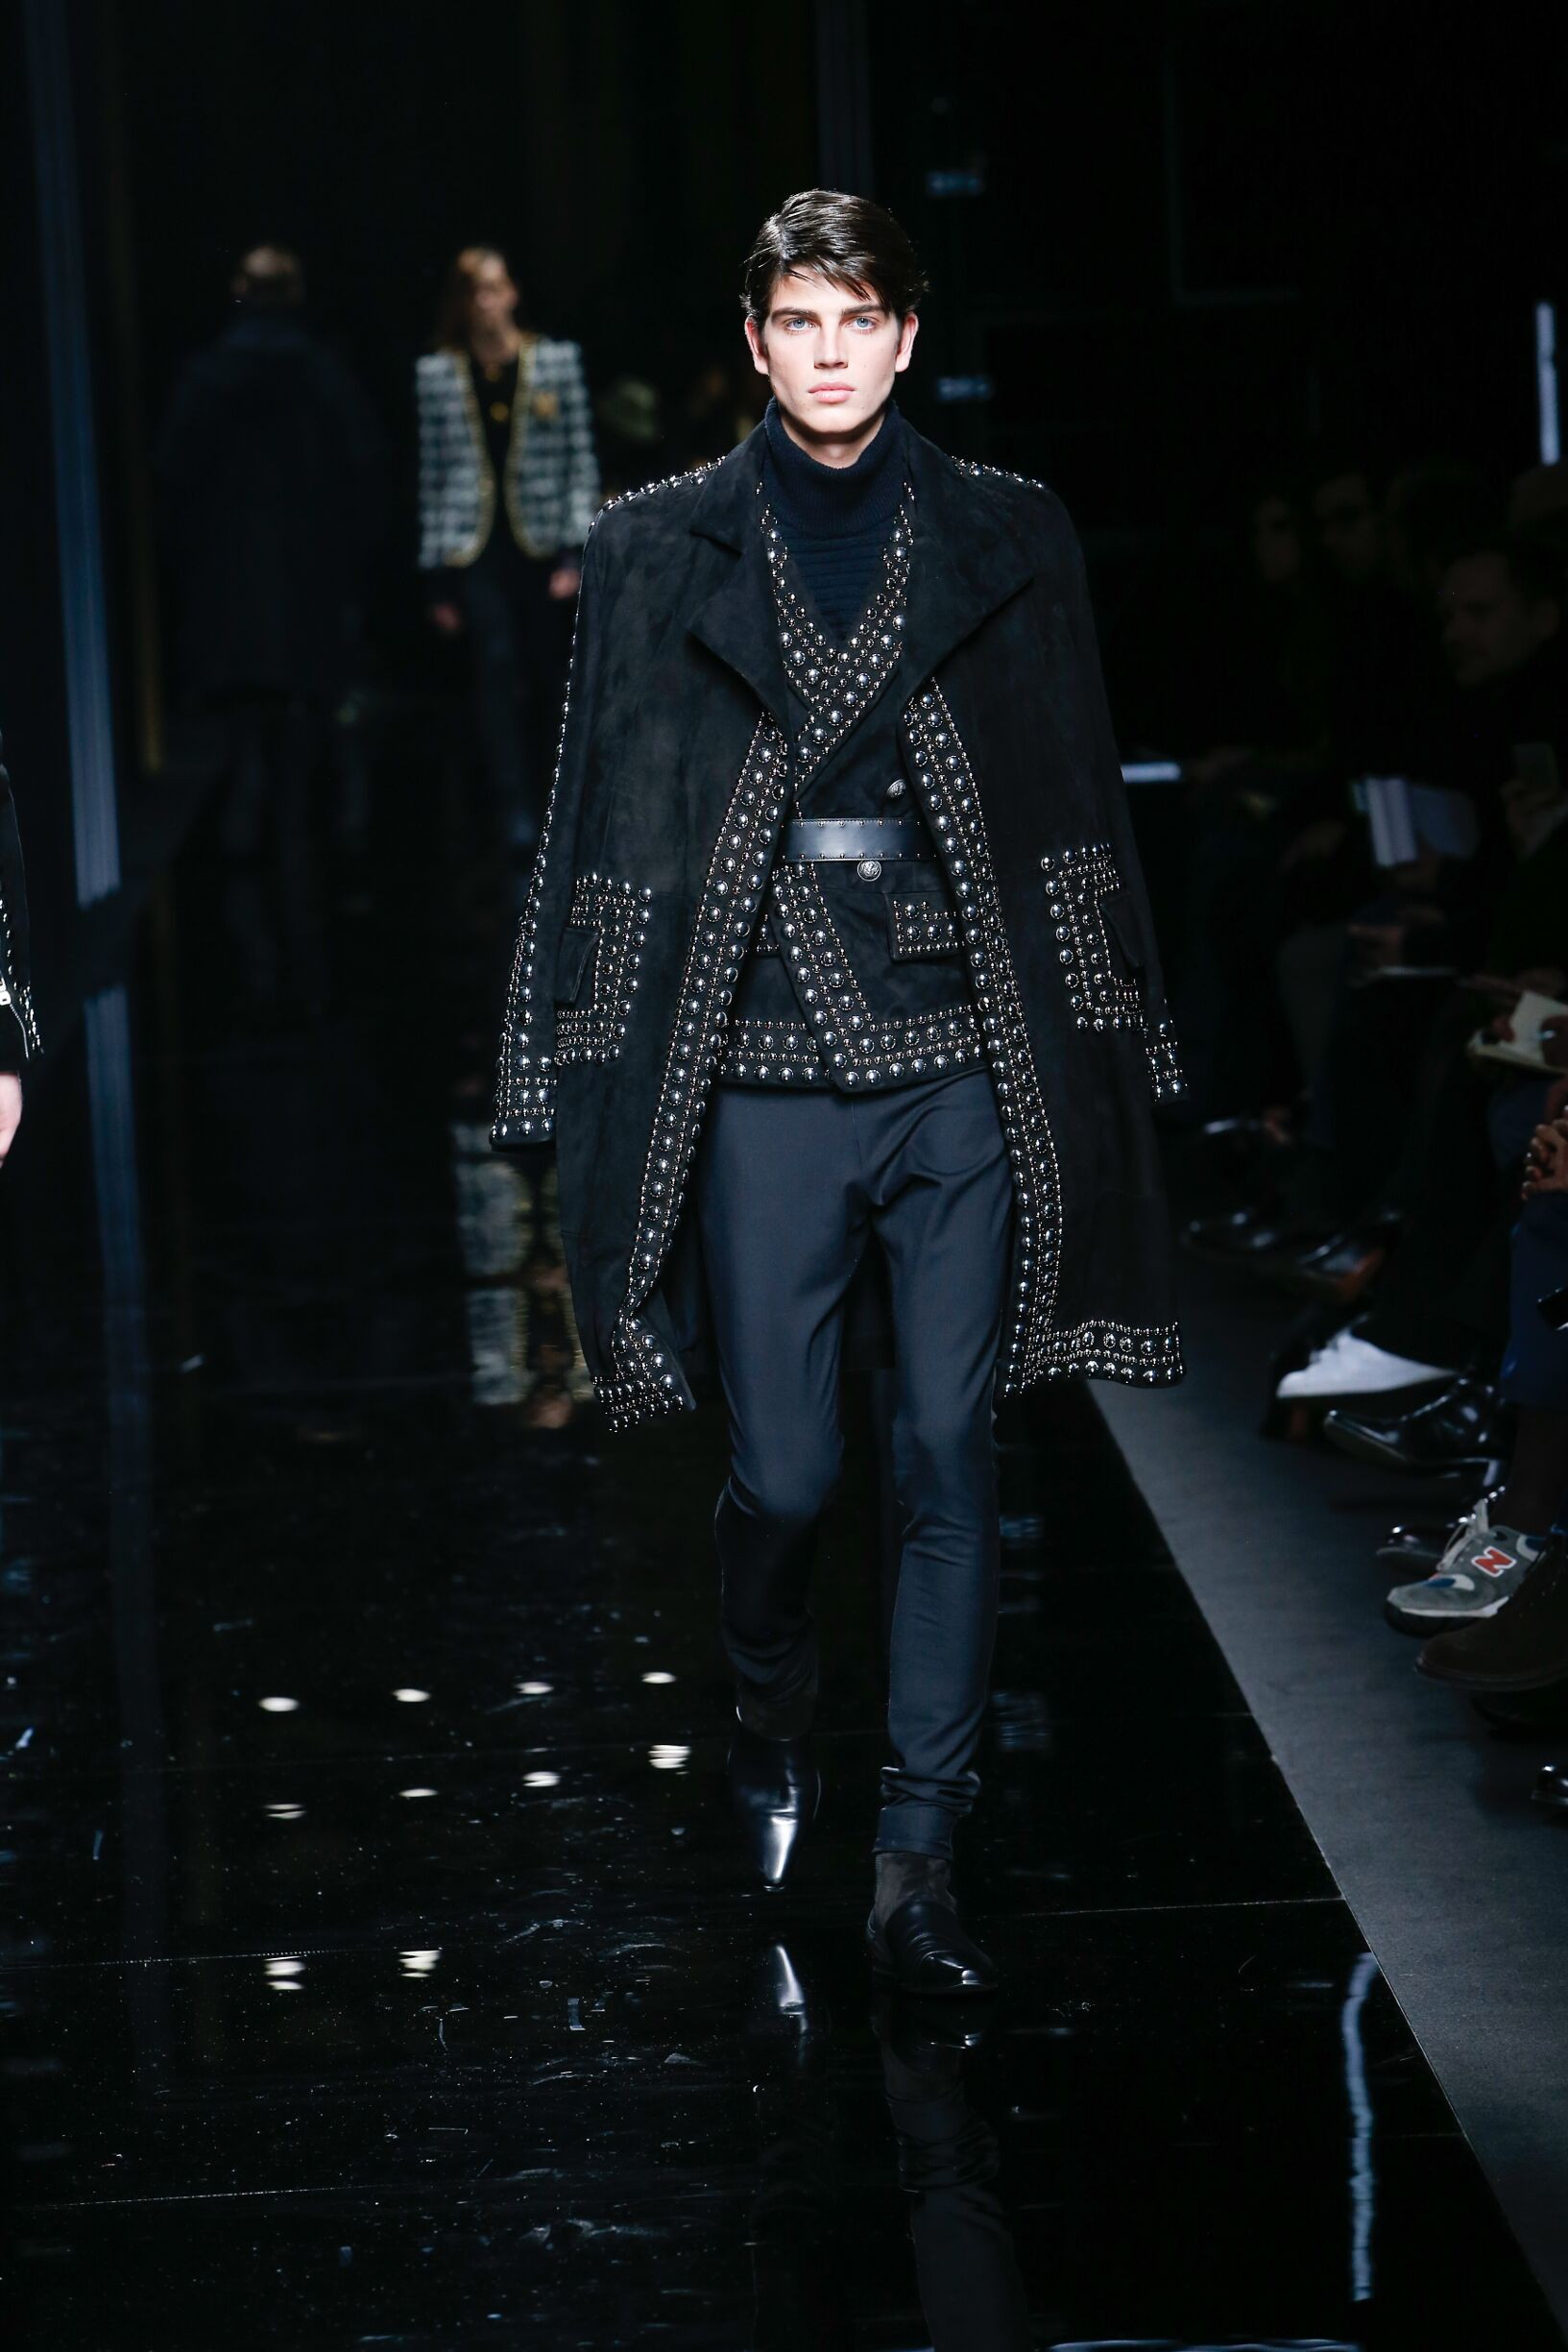 FW 2017-18 Balmain Fashion Show Paris